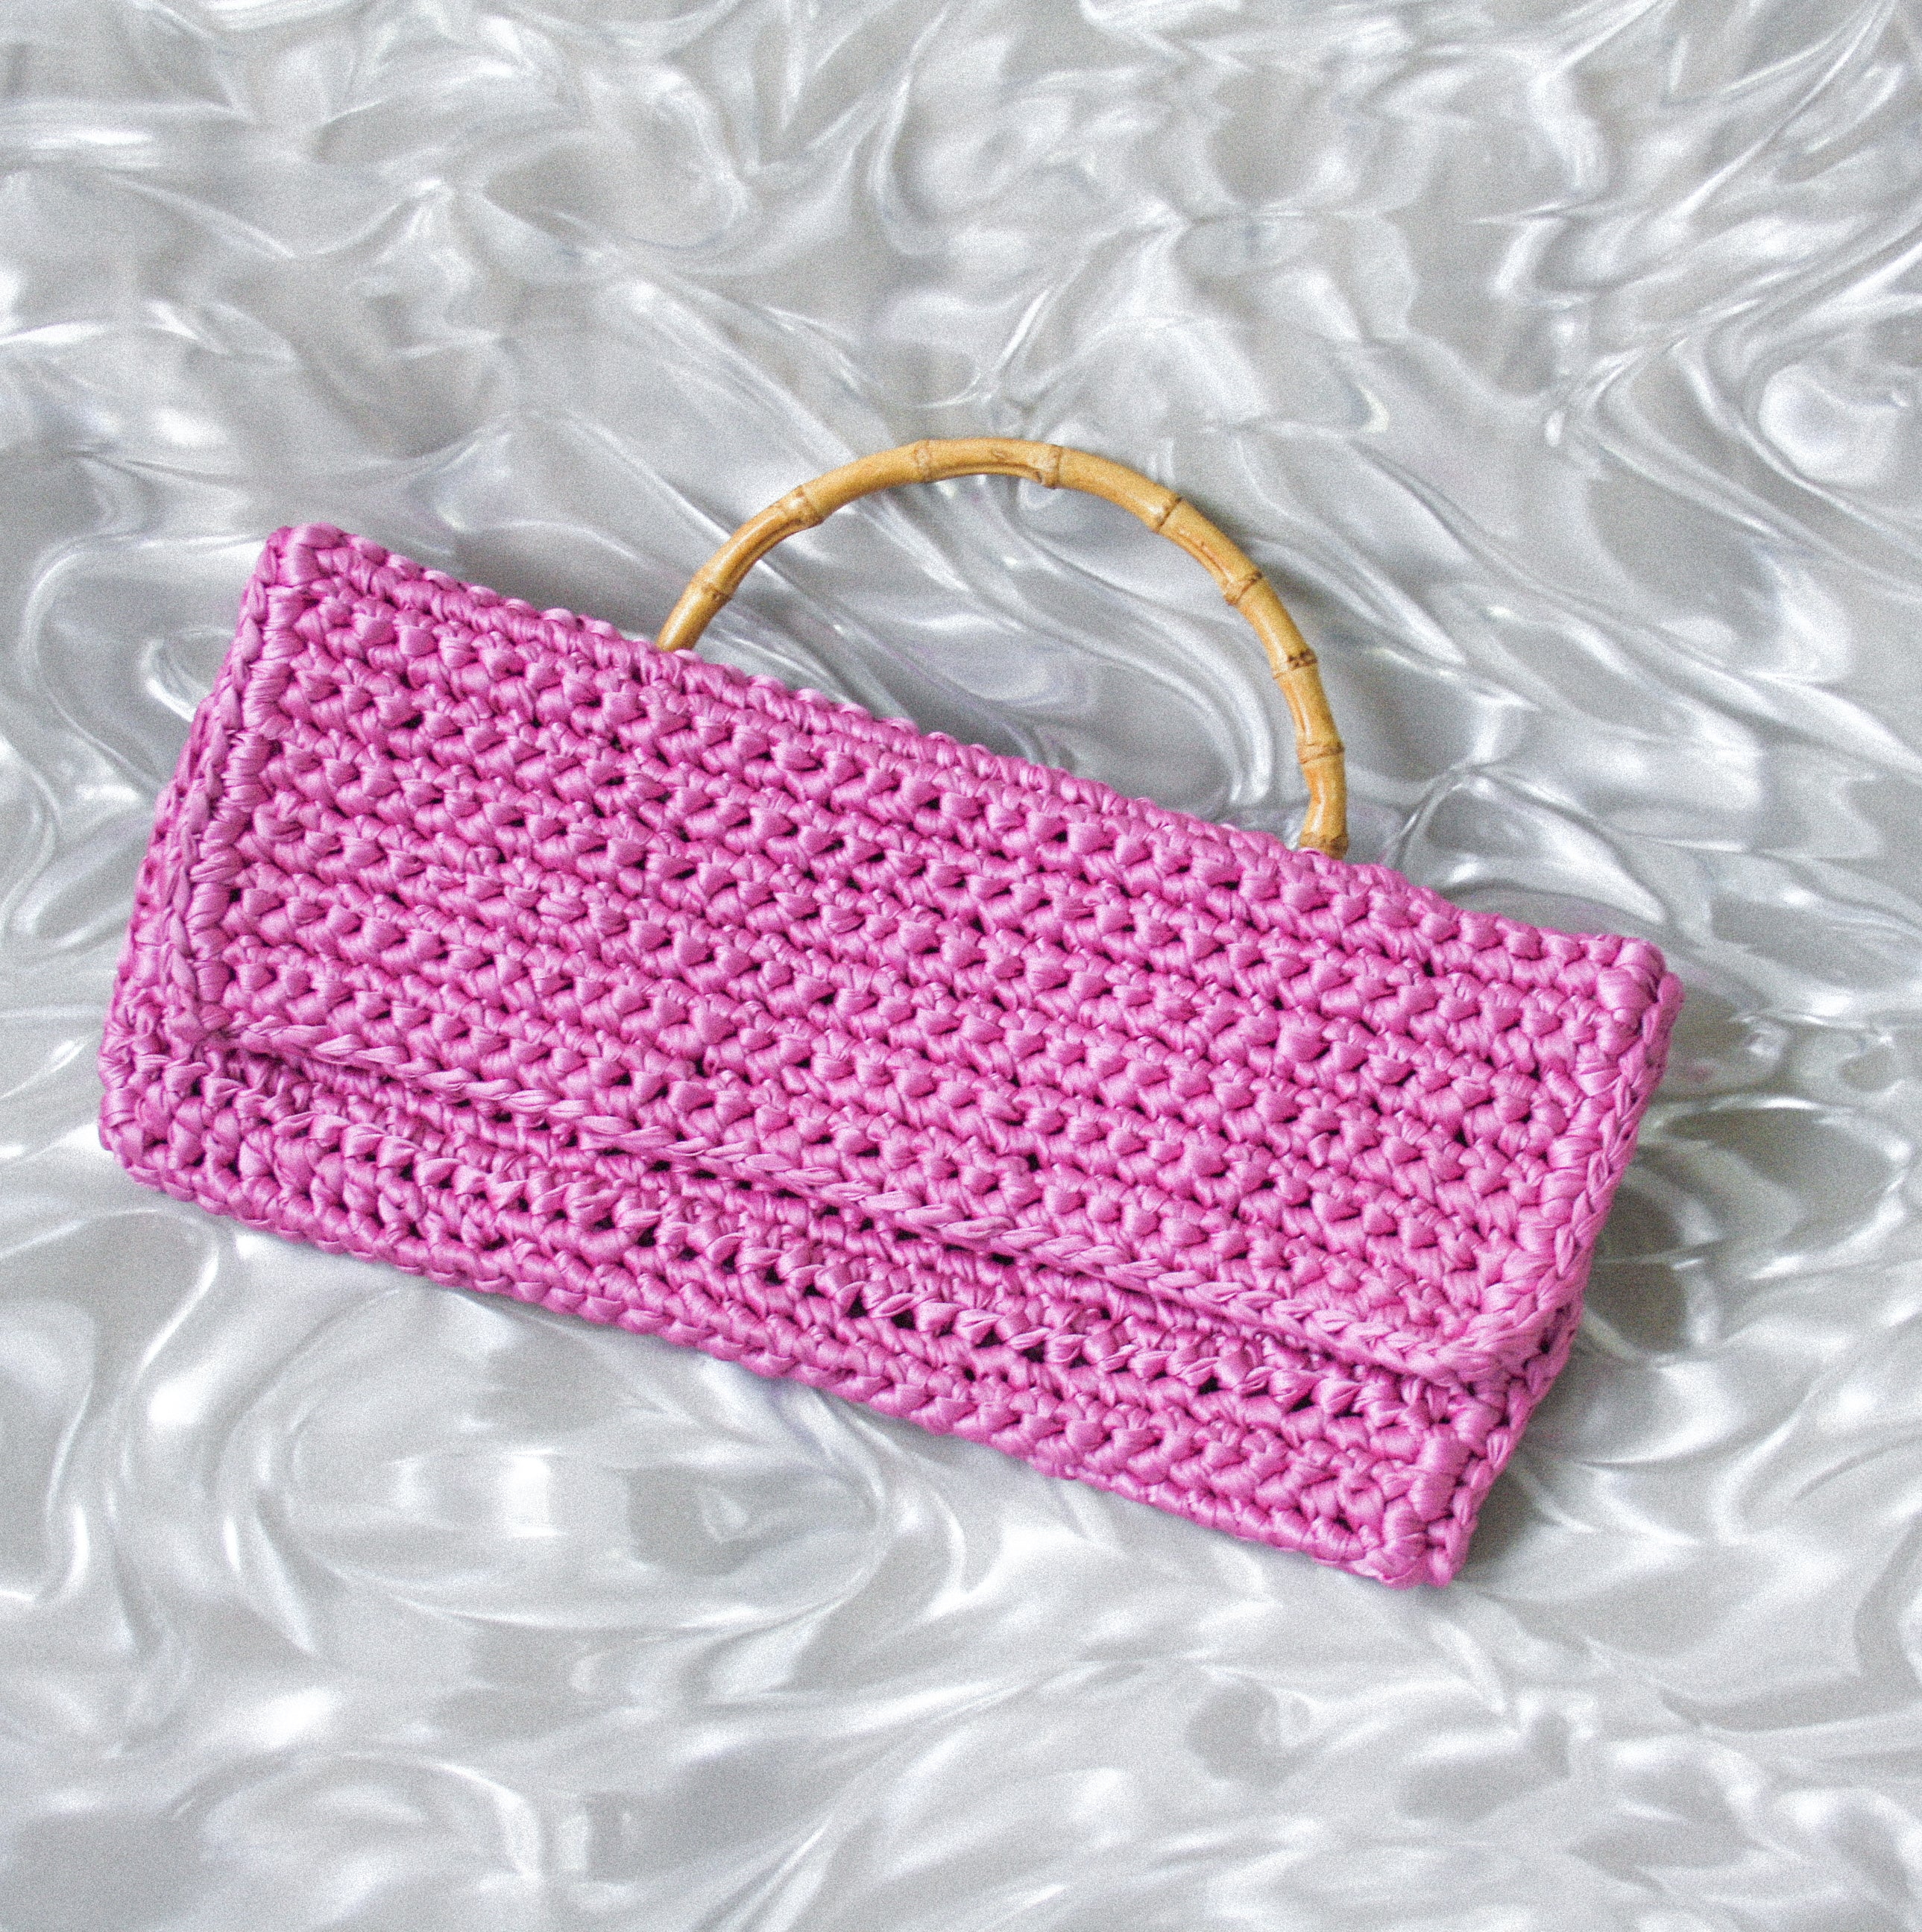 SAMPLE SALE - PINK CROCHET BAG